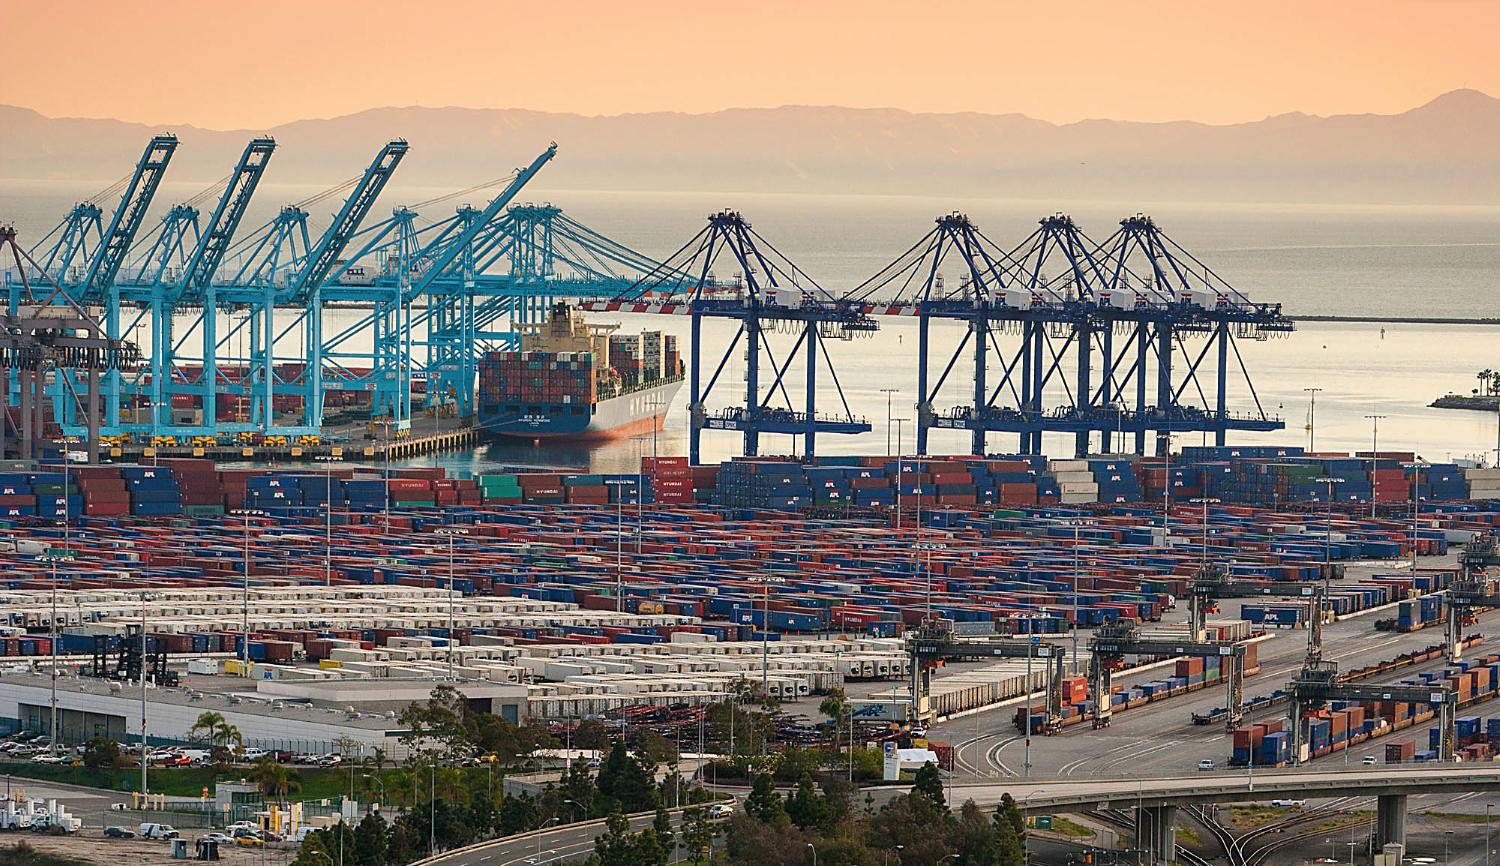 CROPPED: Aerial Views Of The $2.4 Billion Alameda Corridor Rail Cargo Expressway Project